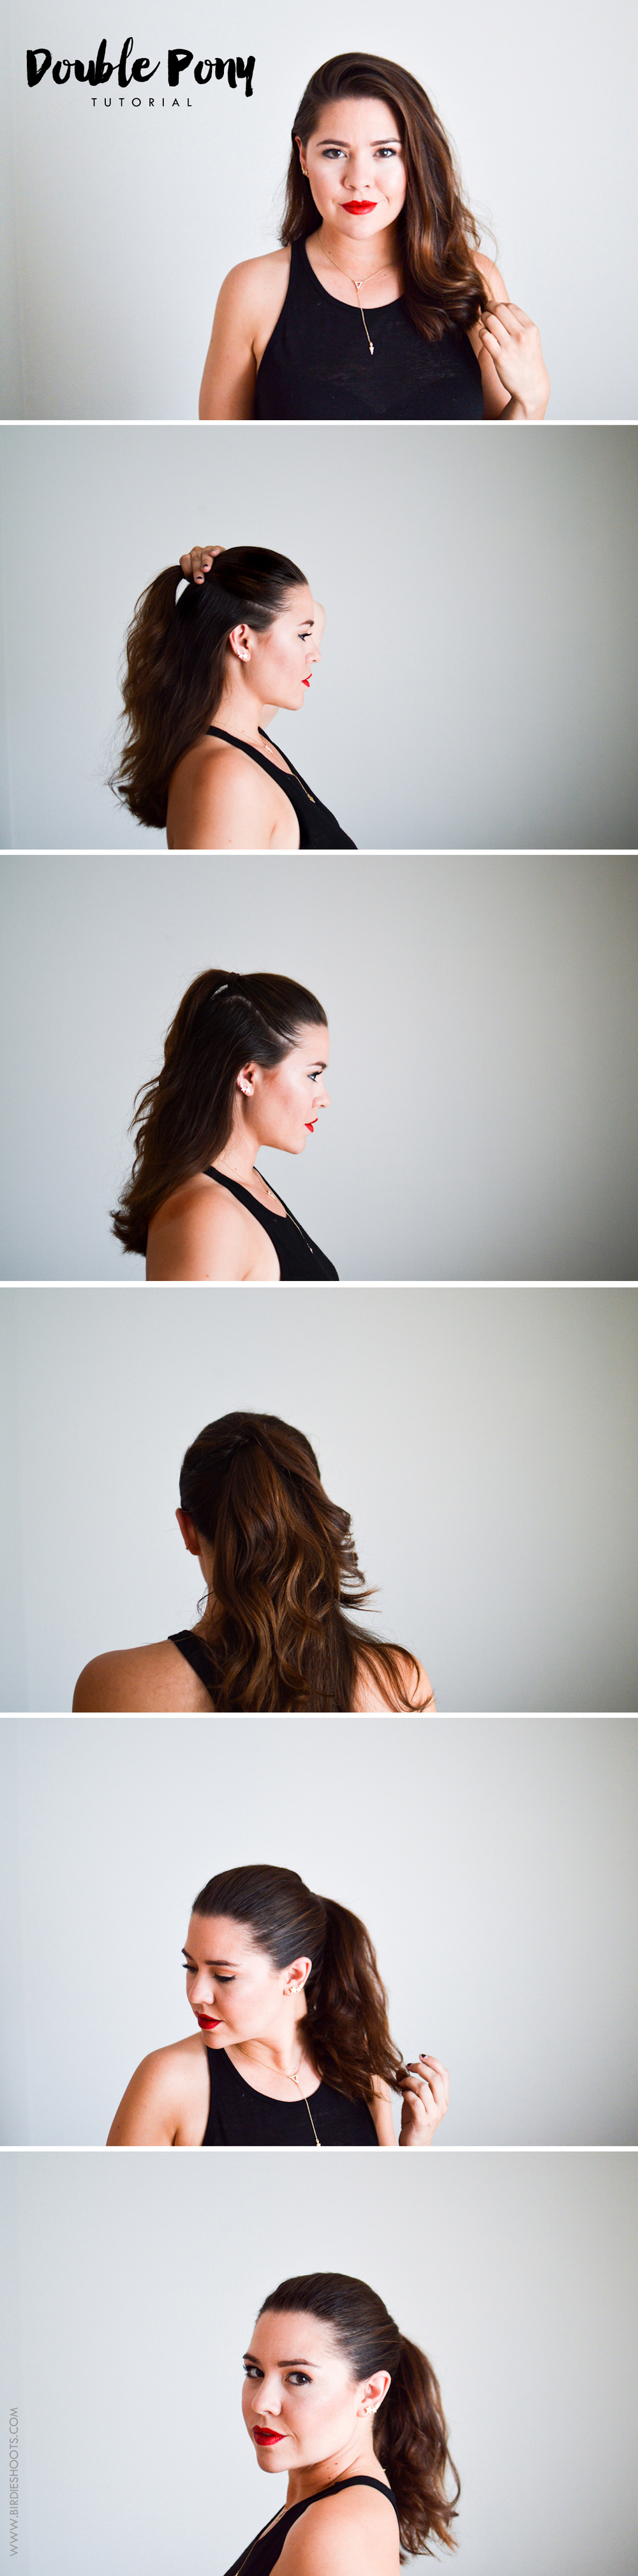 Double Ponytail Tutorial via. Birdie Shotos